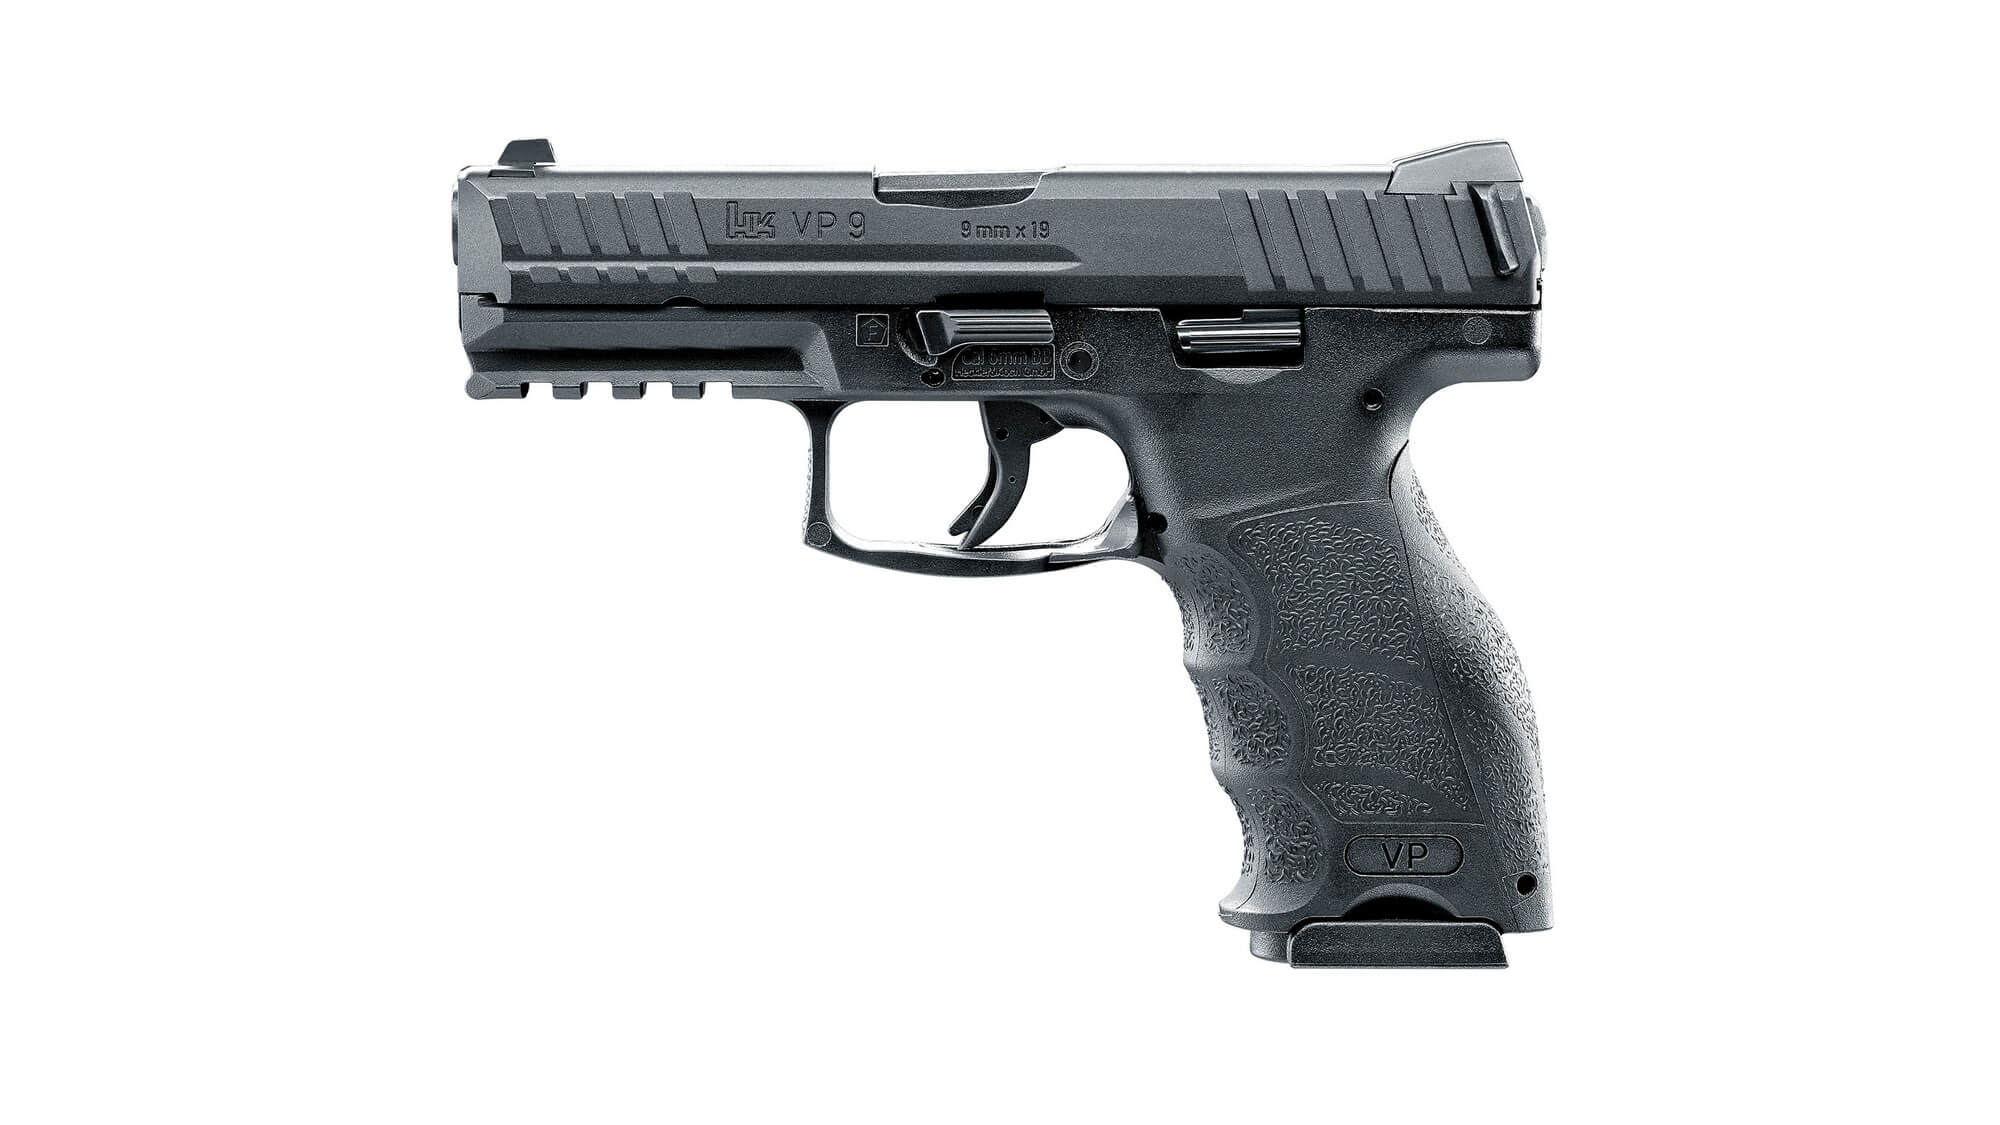 Umarex VP9, Sort